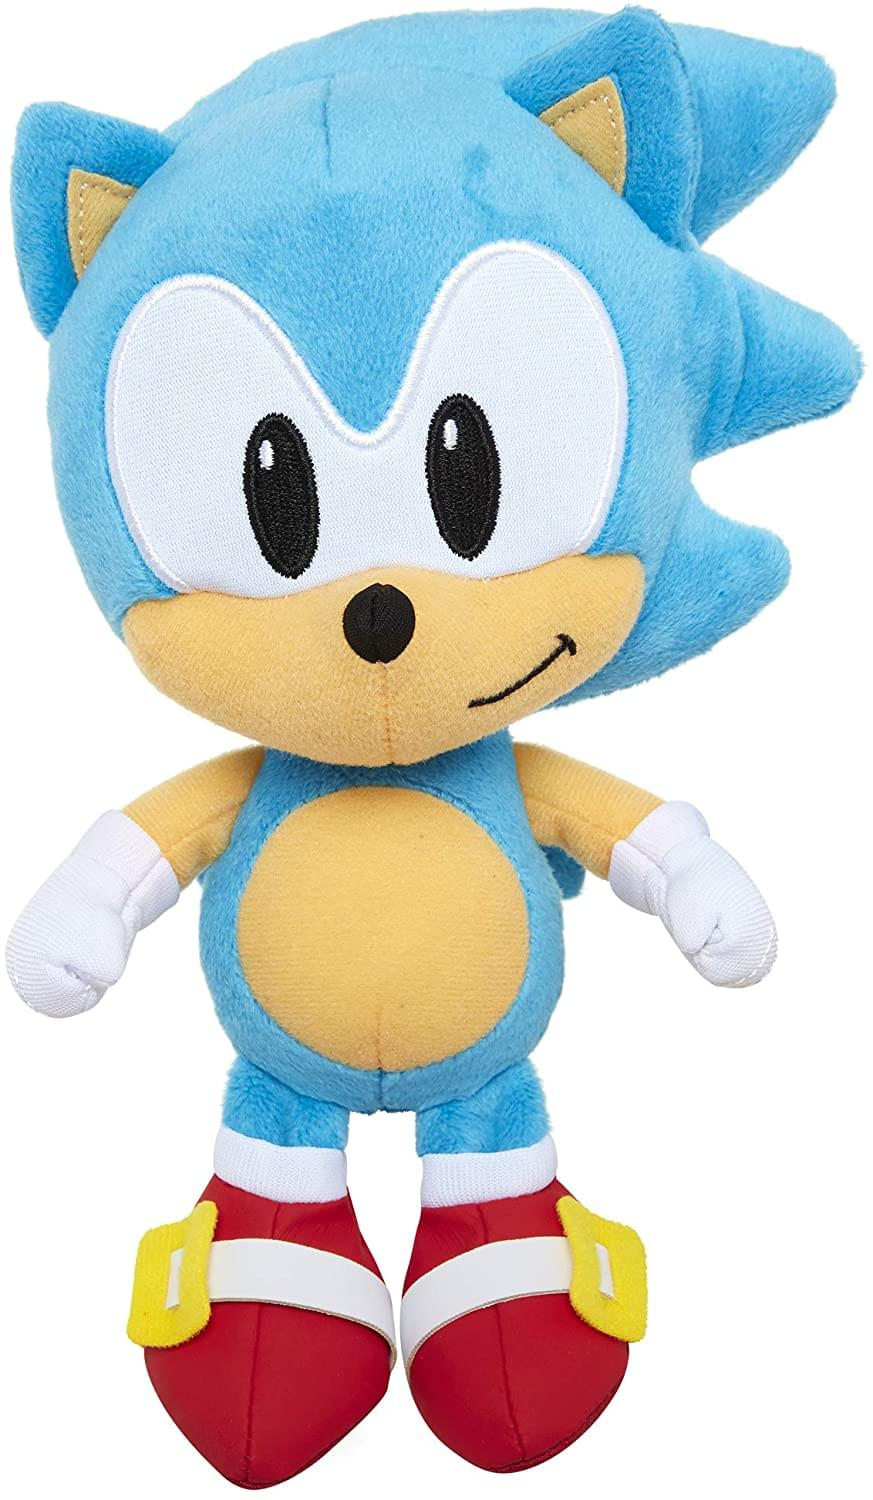 Sonic the Hedgehog 7 Inch Character Plush | Sonic